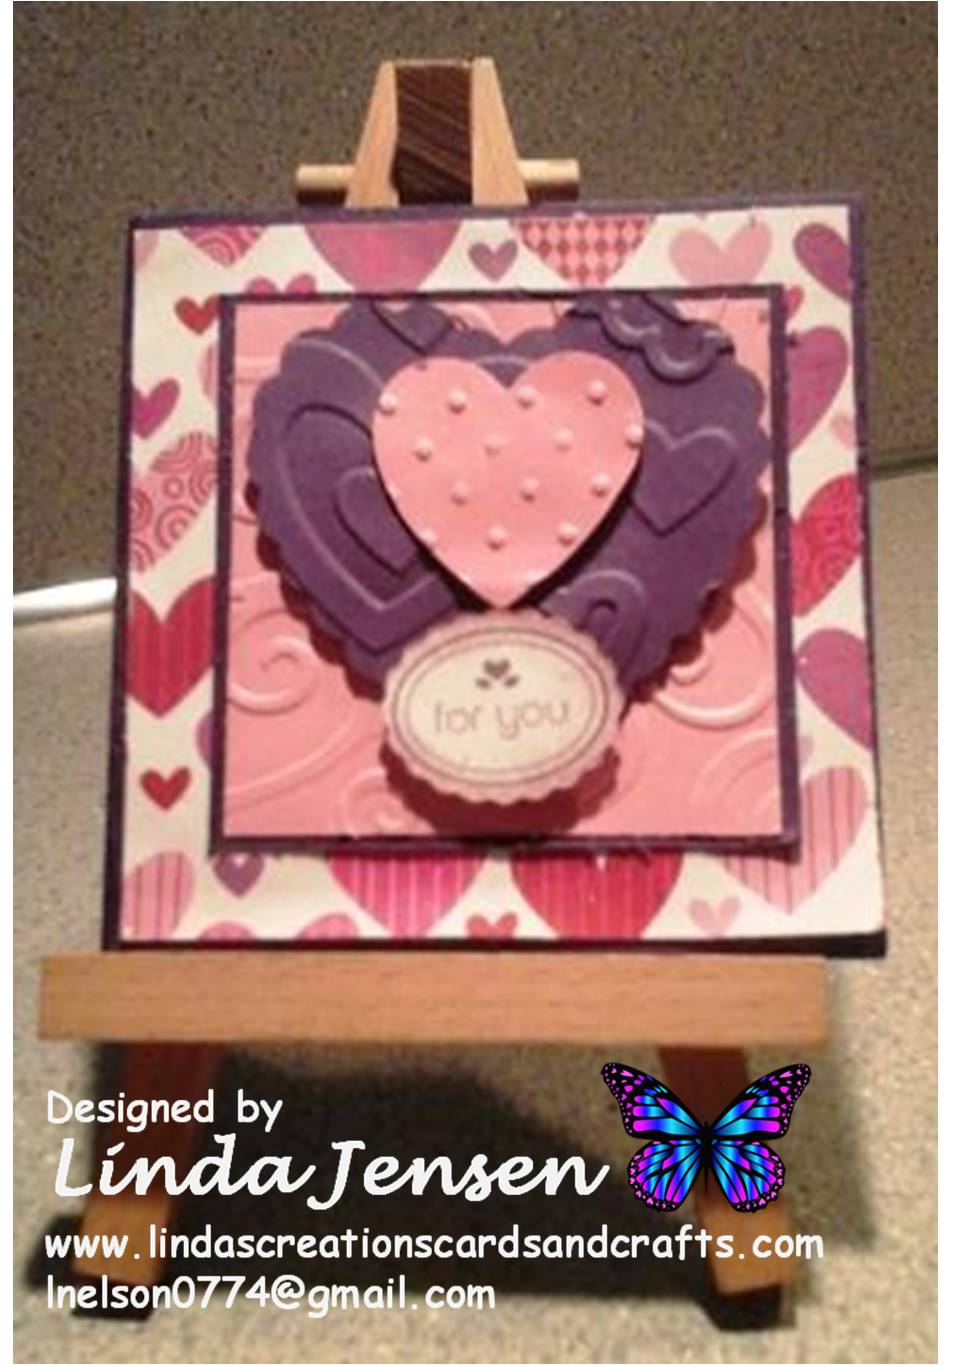 Linda S Creations Cards Amp Crafts My Little Valentine Card